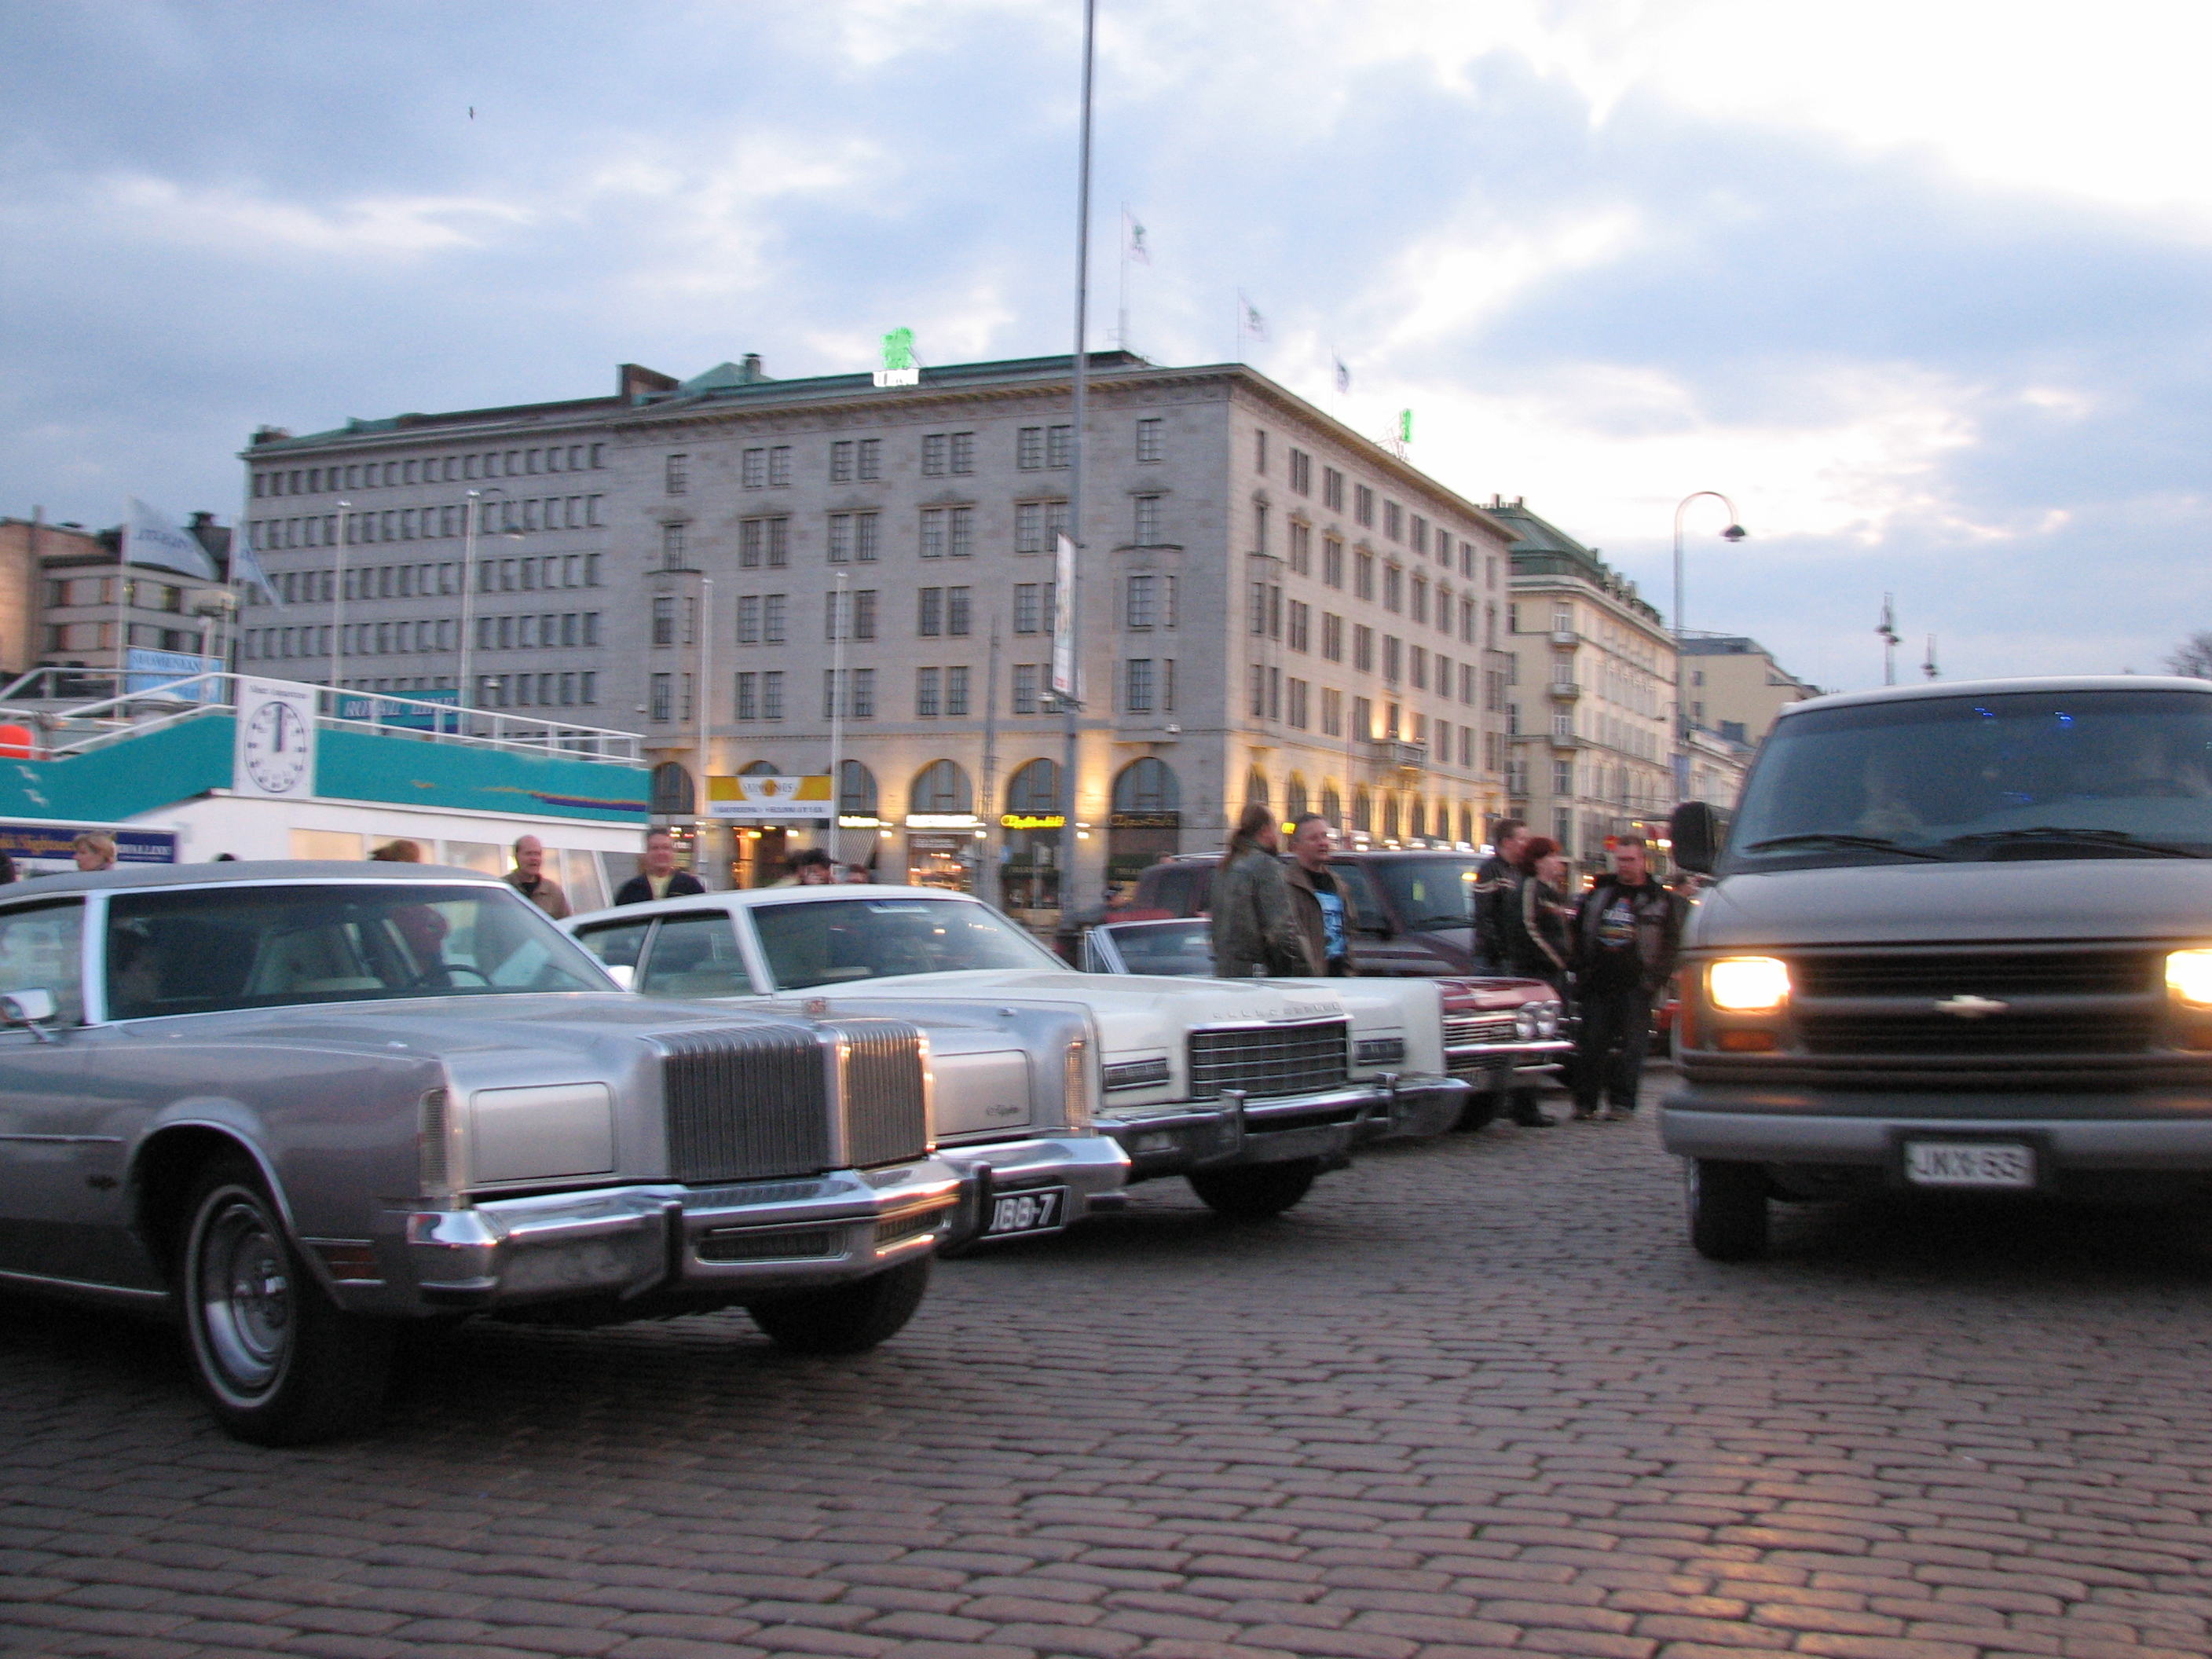 File:Old American cars at Helsinki Market Square.jpg - Wikimedia Commons